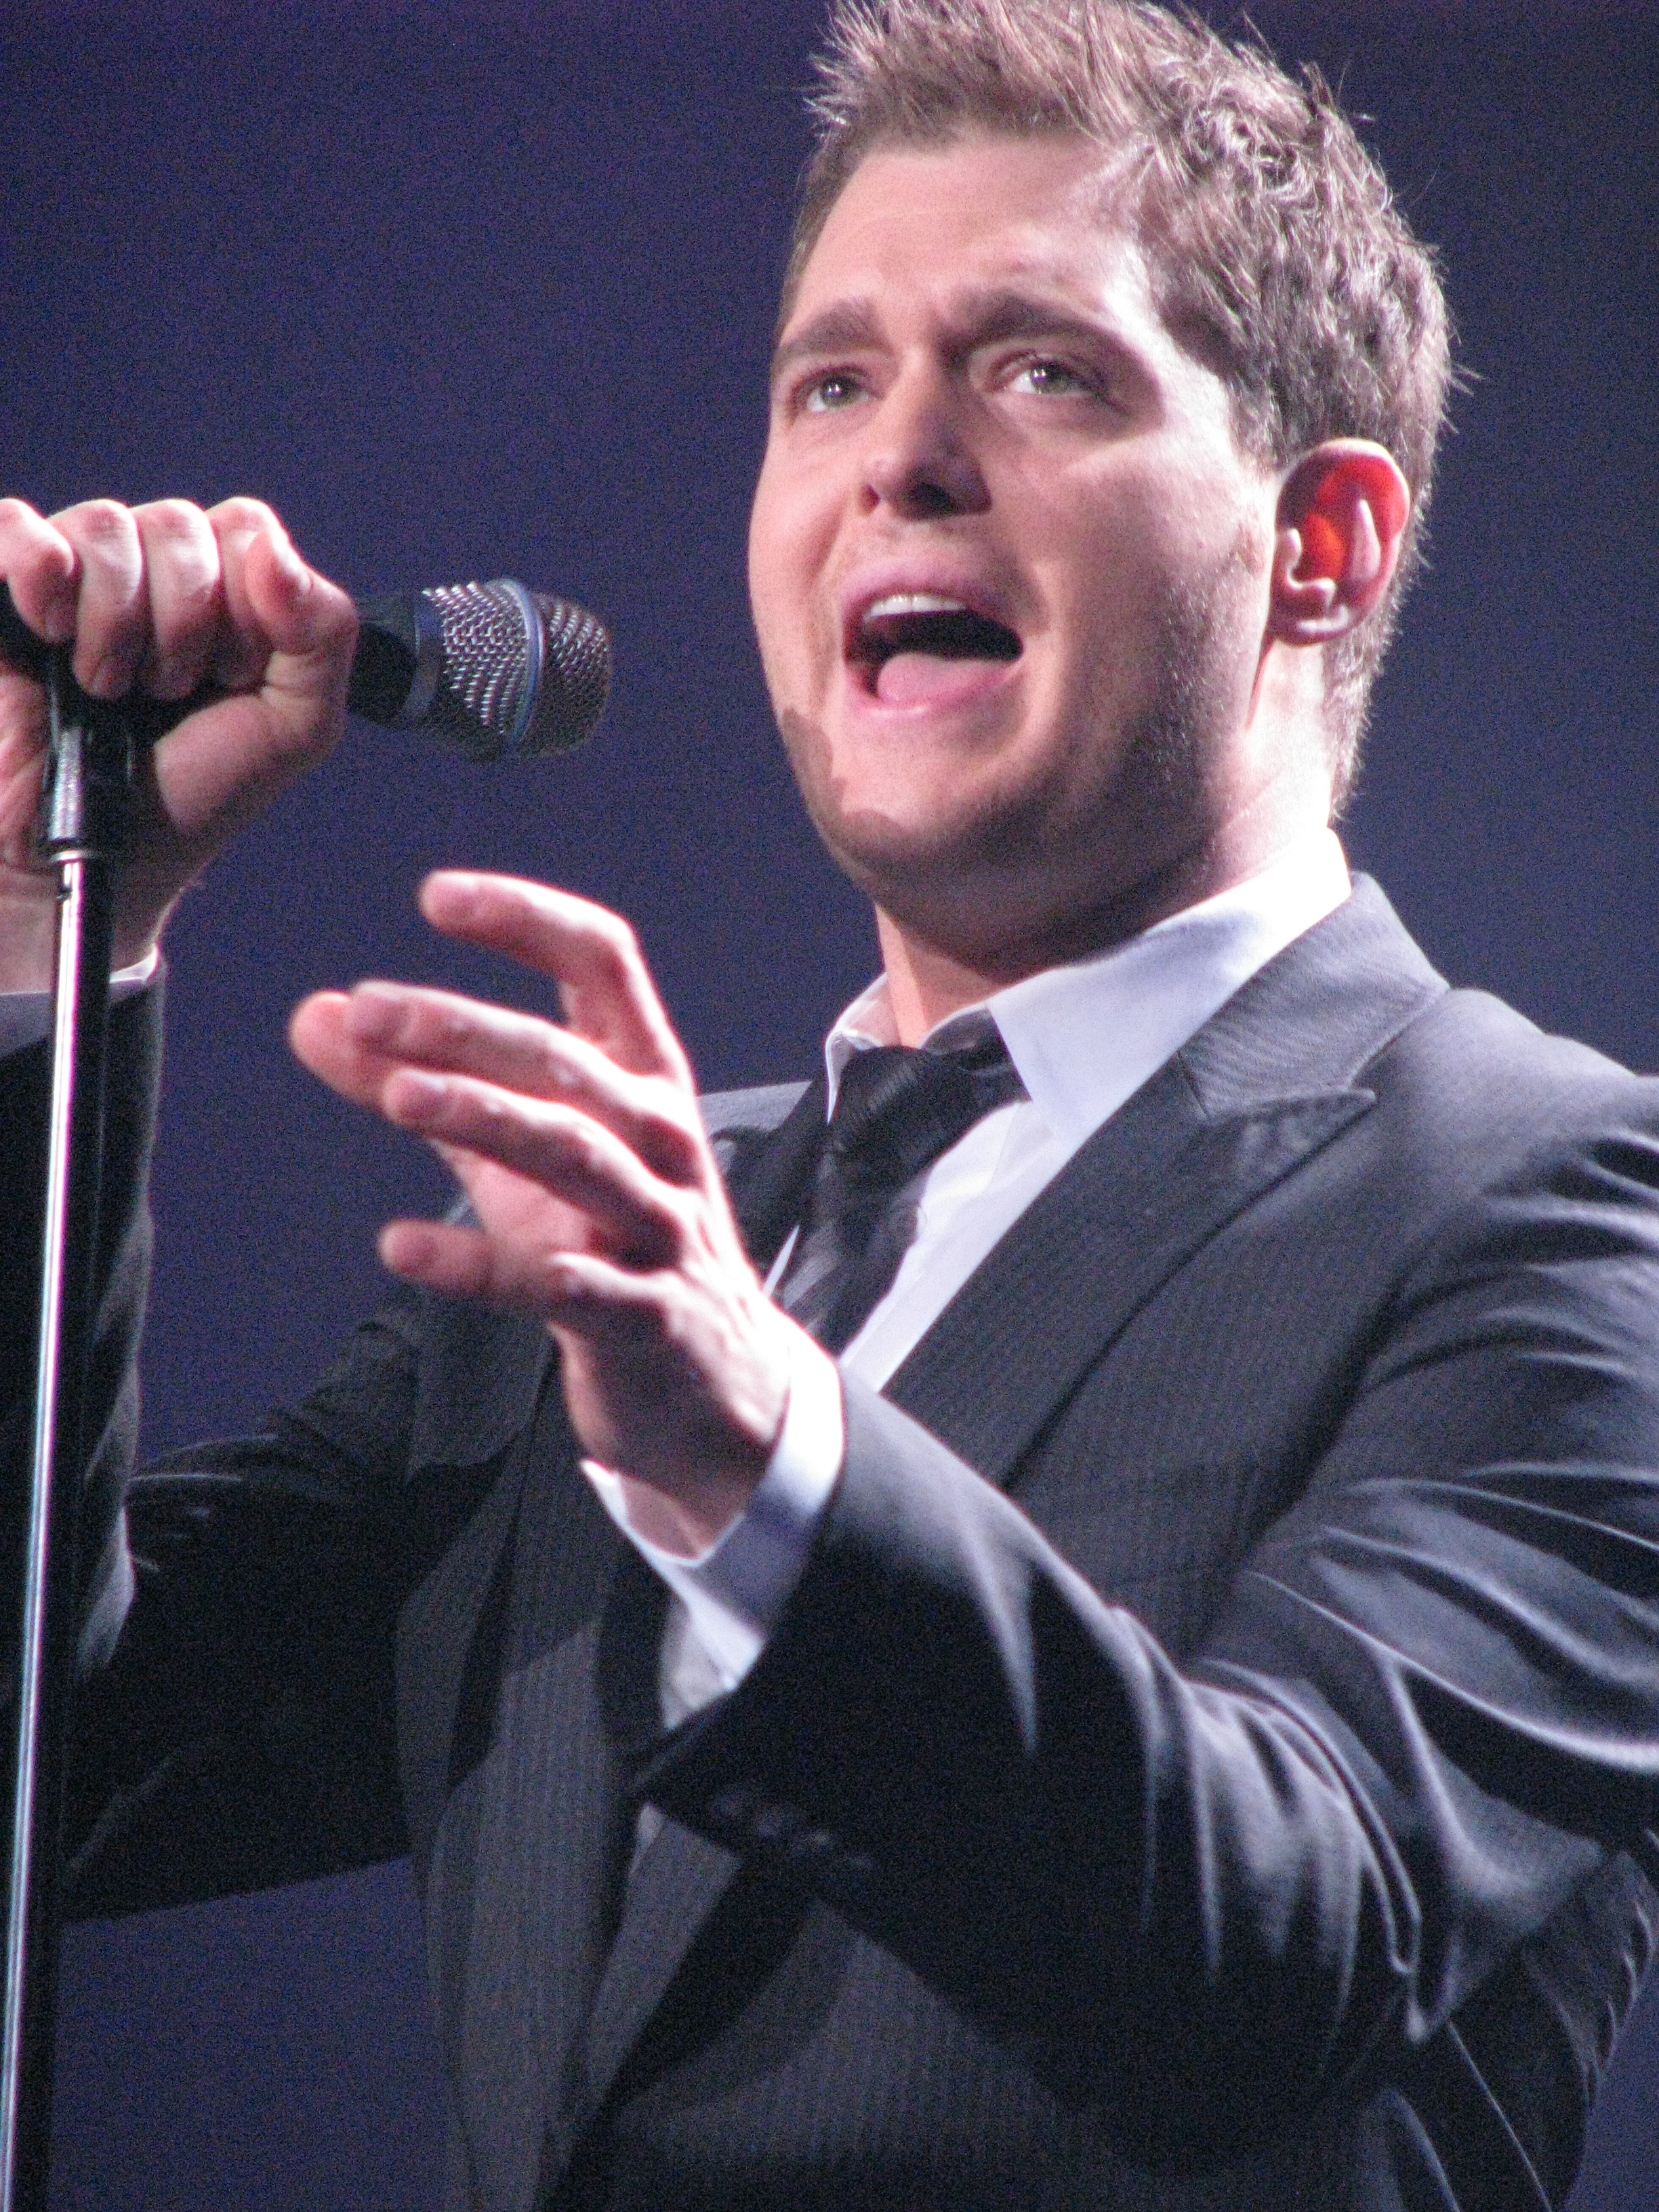 Michael Bublé discography - Wikipedia